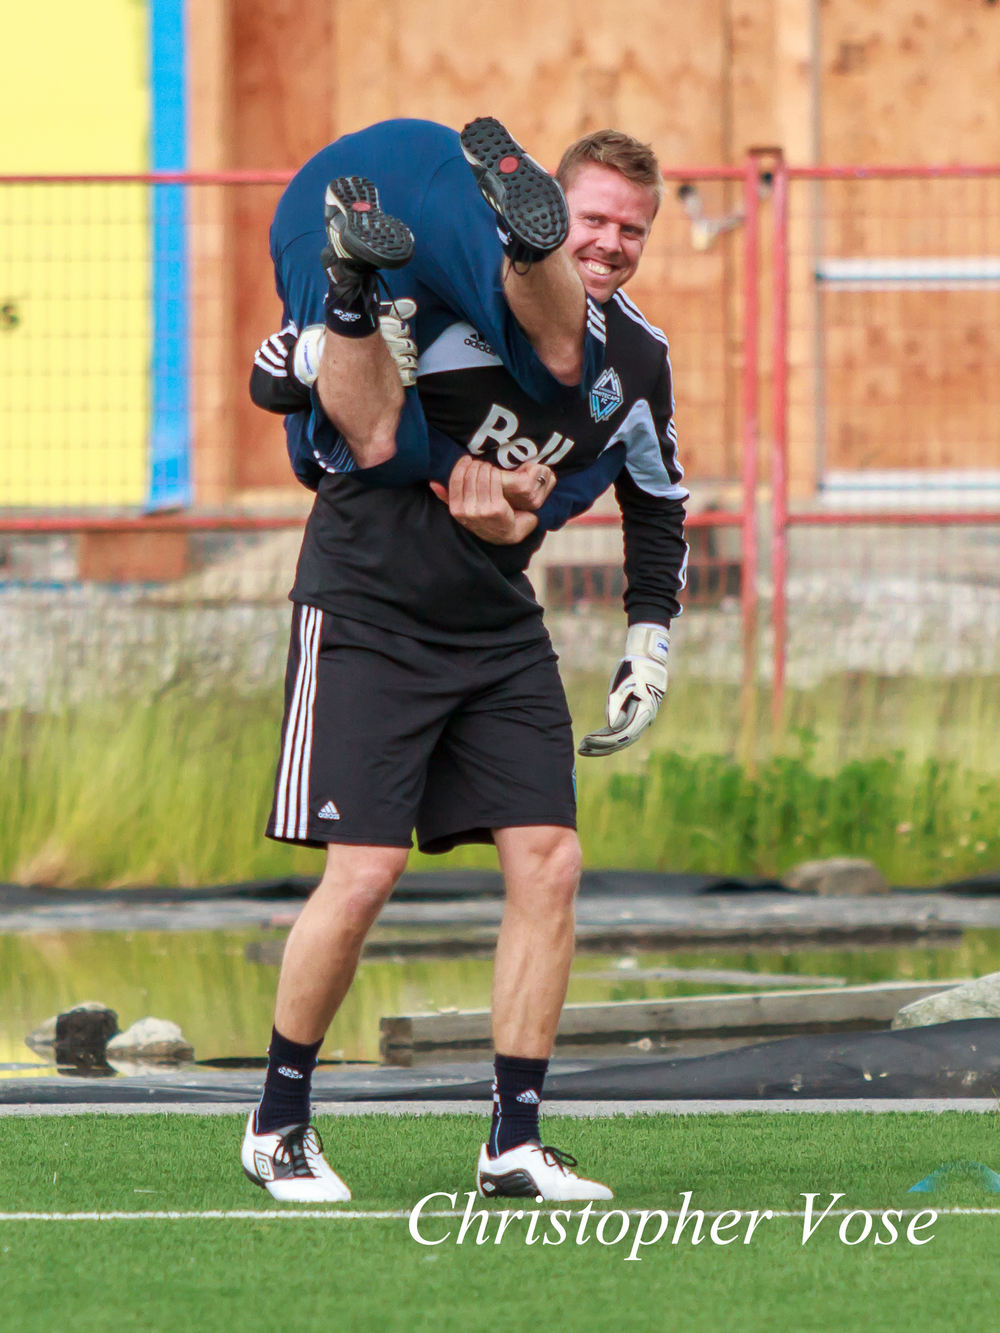 Marius Røvde prepares for his 40th birthday by carrying Vancouver Whitecaps FC physiotherapist Graeme Poolearound the pitch at the Burnaby Lake Sports Complex on 14 June 2012.